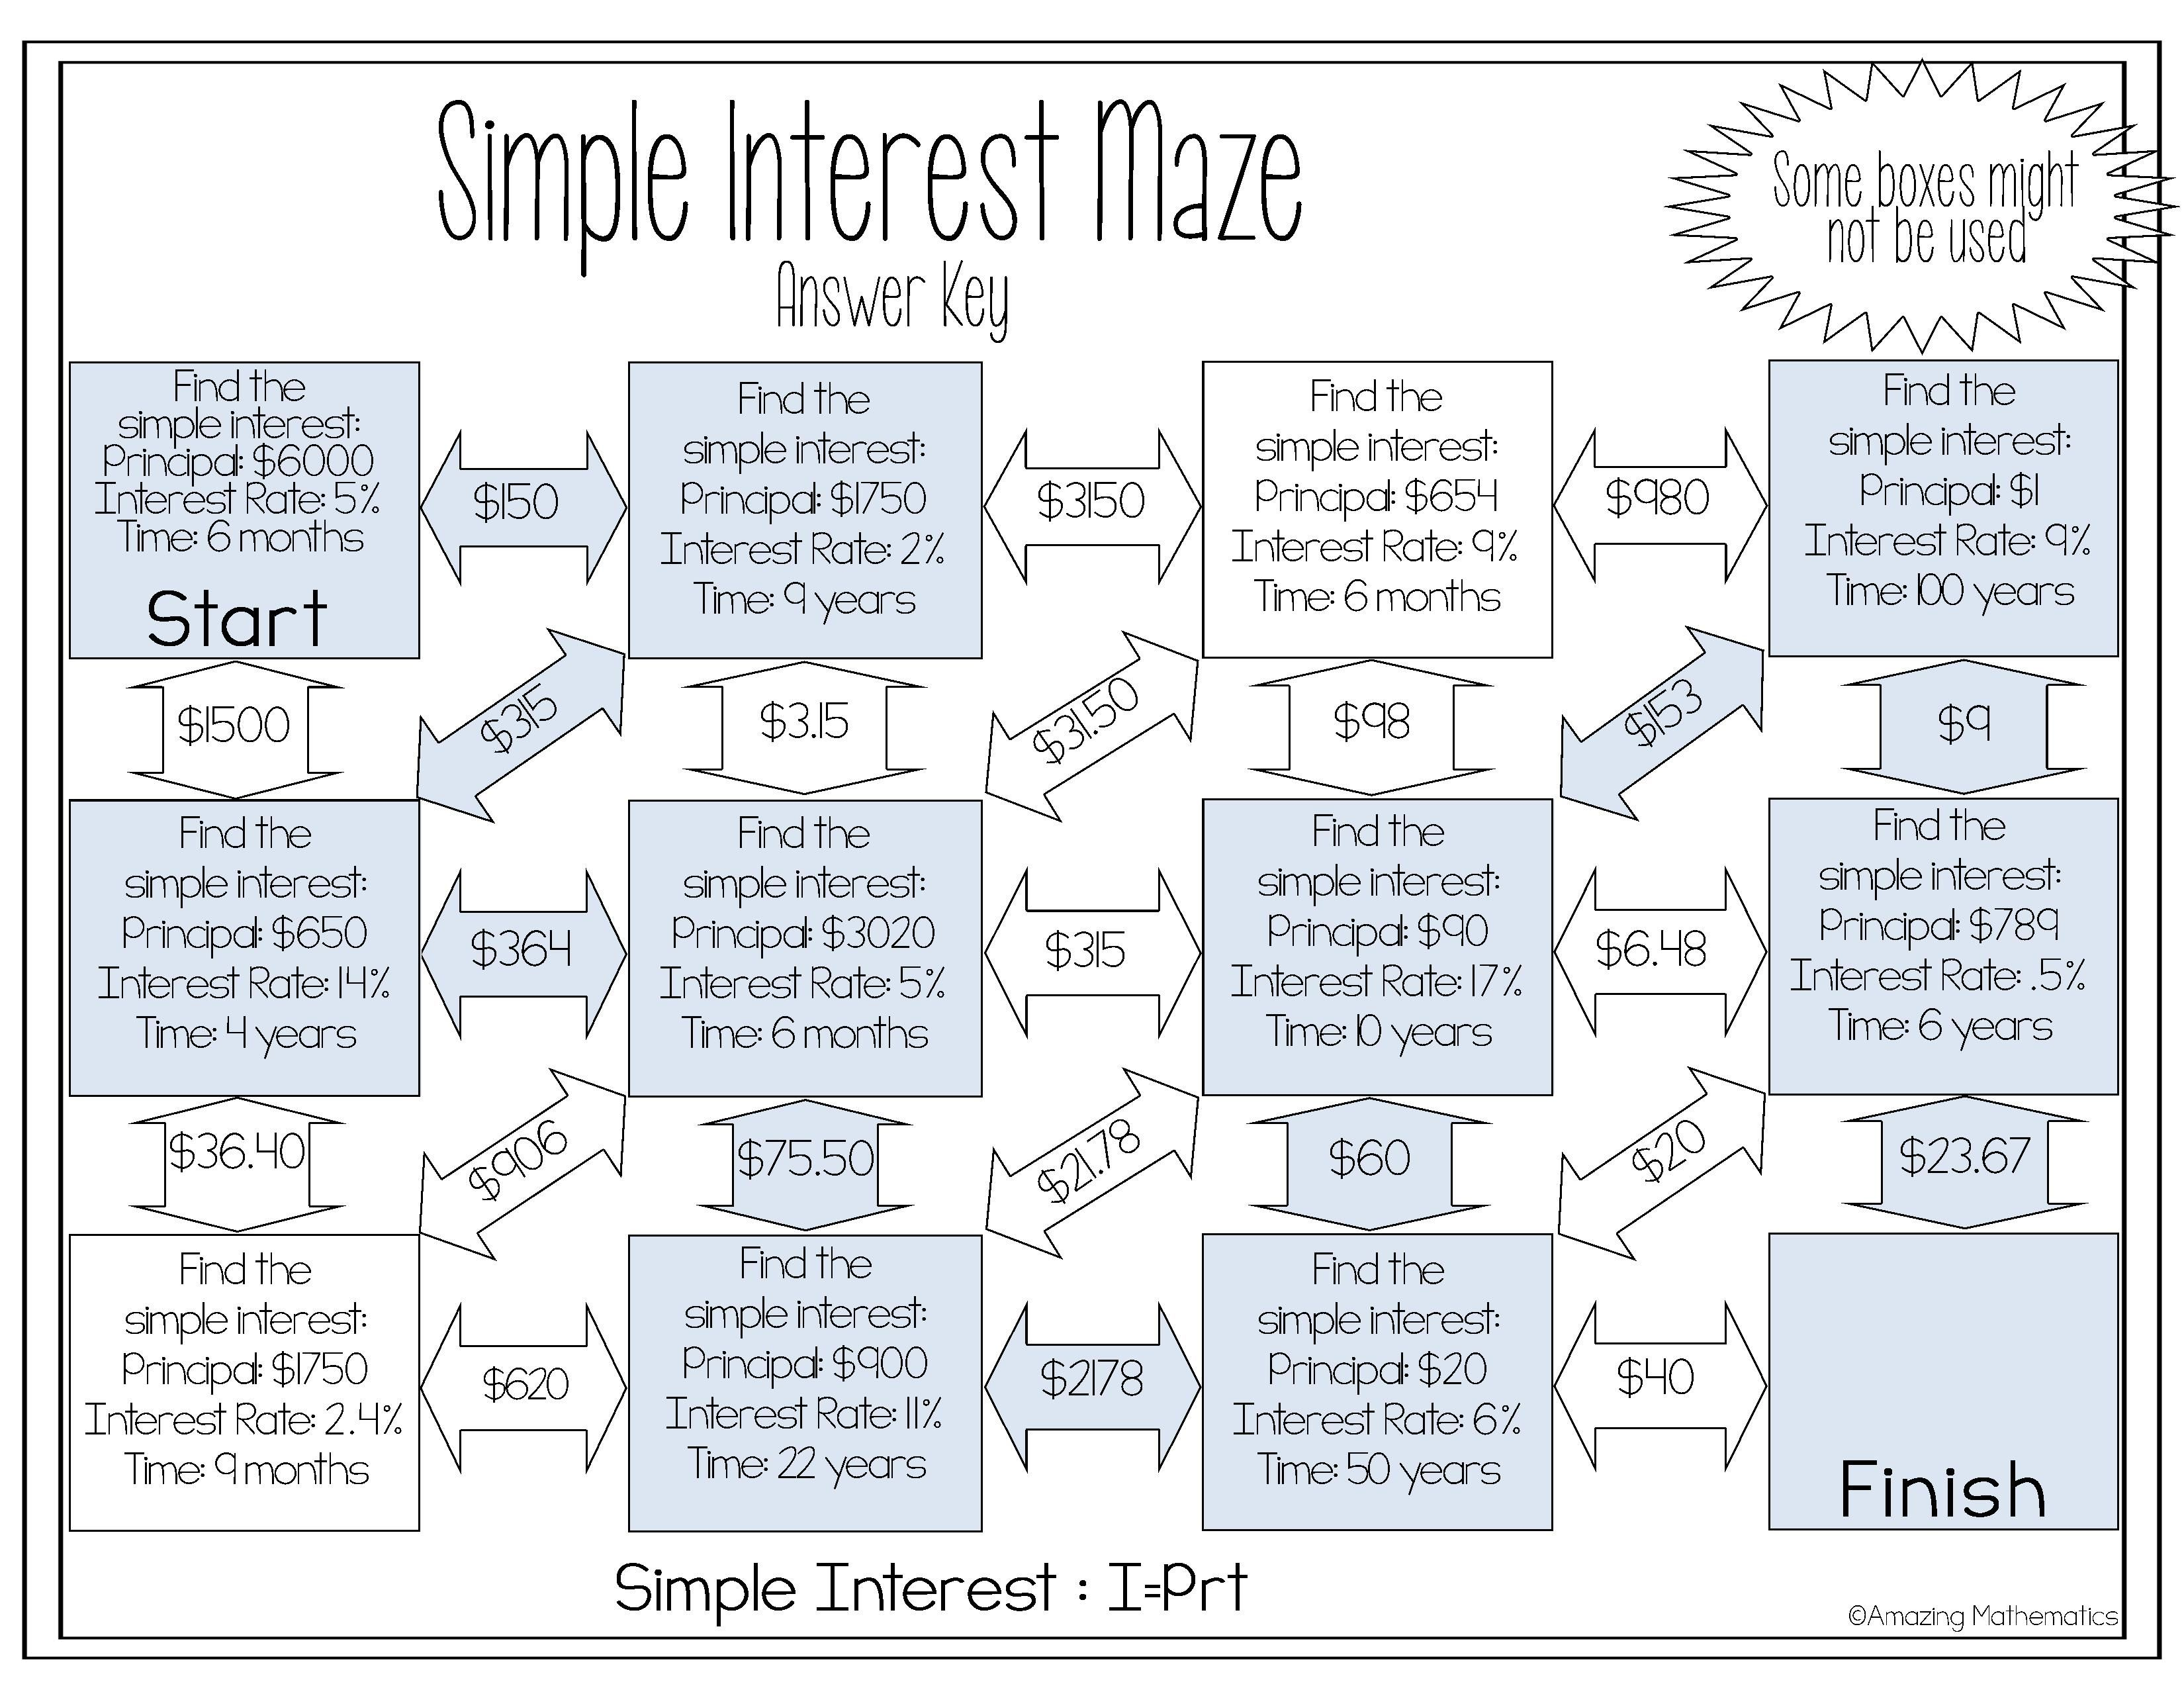 Simple Interest Maze Beginner